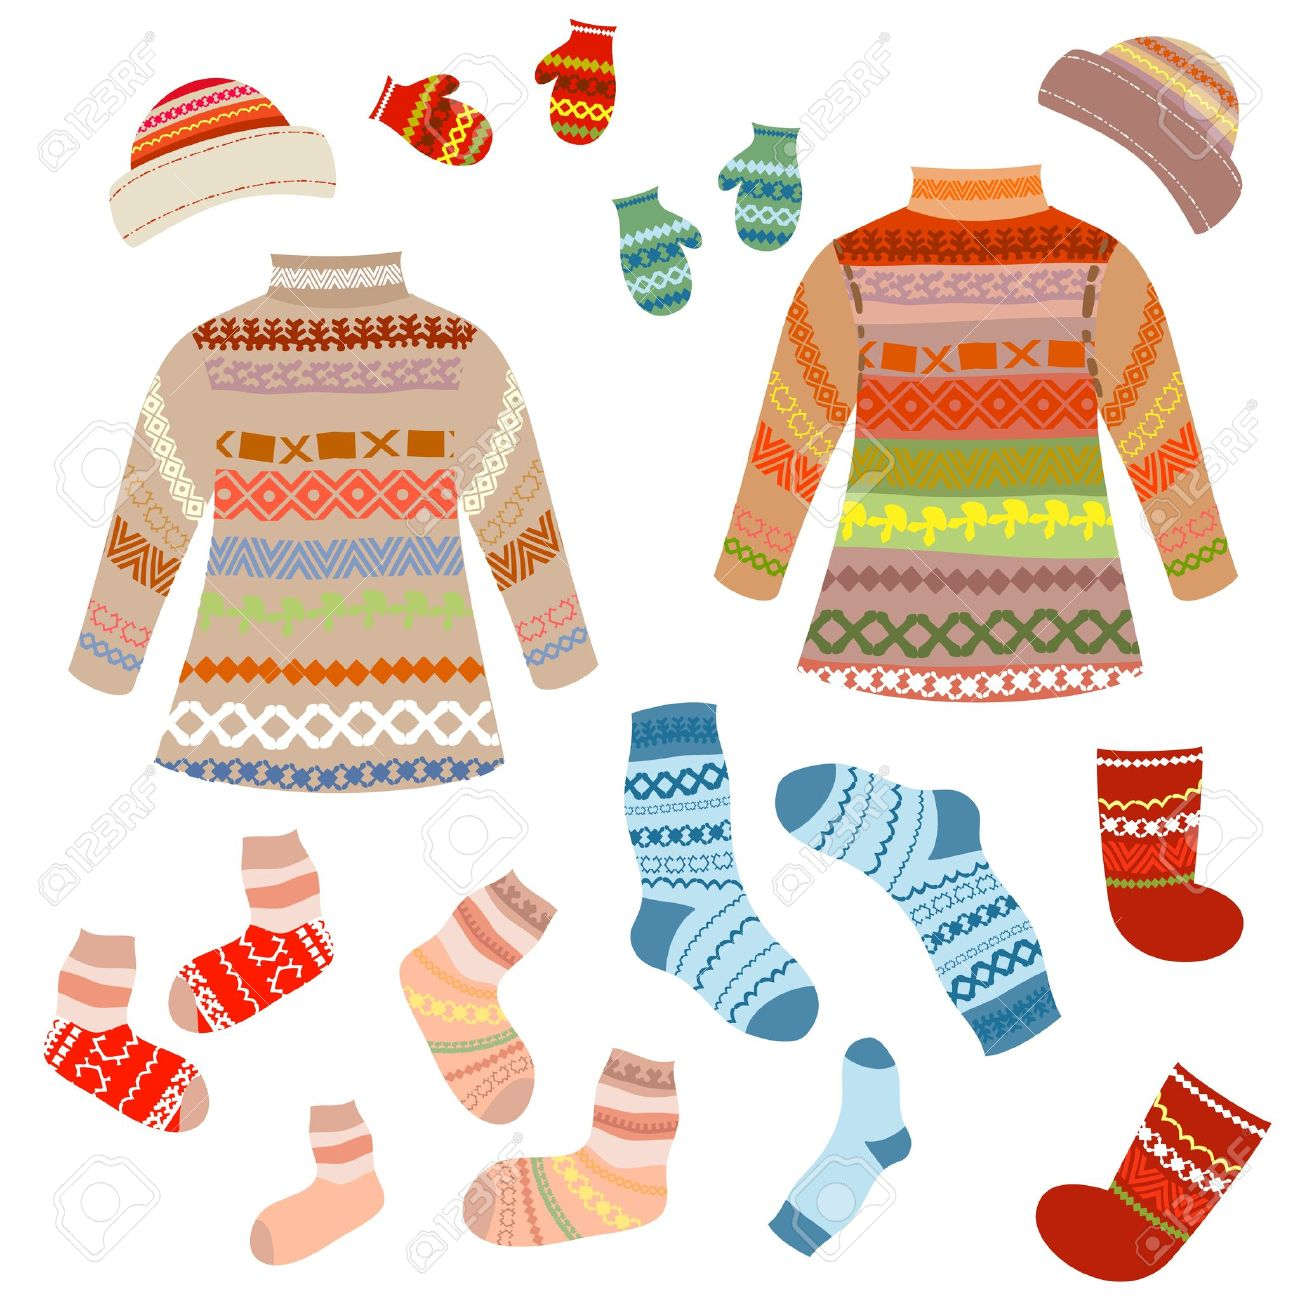 Warm knitting patterns with Stock Vector - 10901699